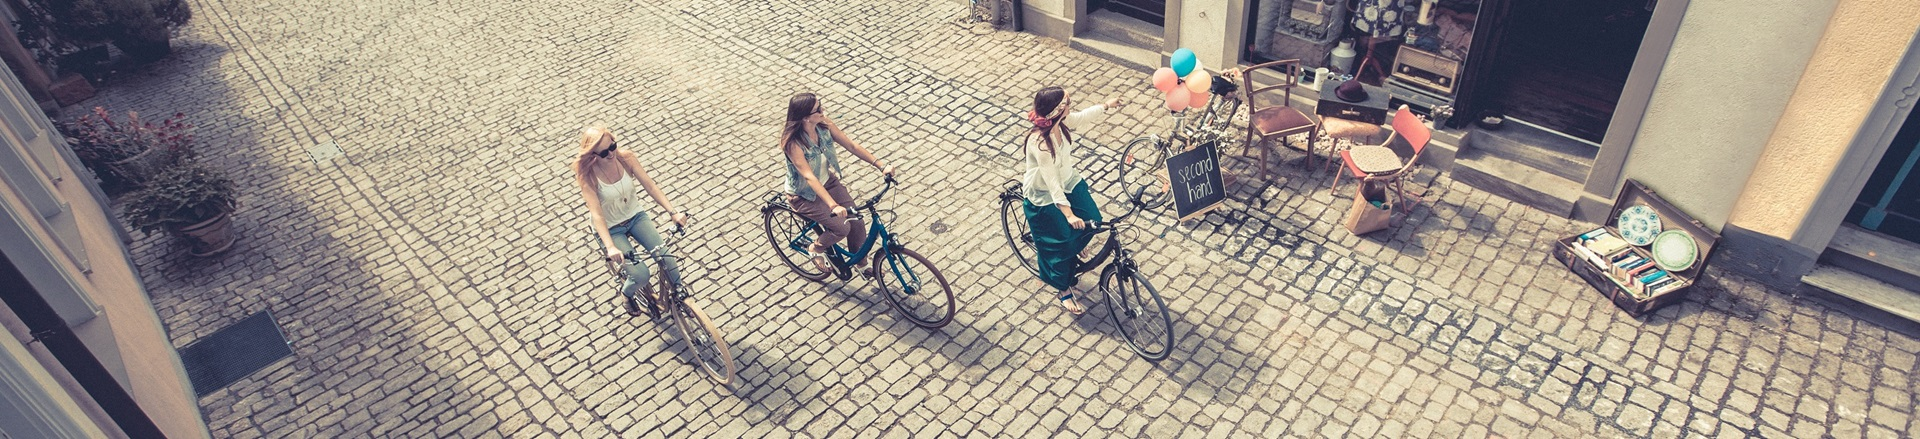 Three women cycling through the city on their Winora Ladies City Bikes